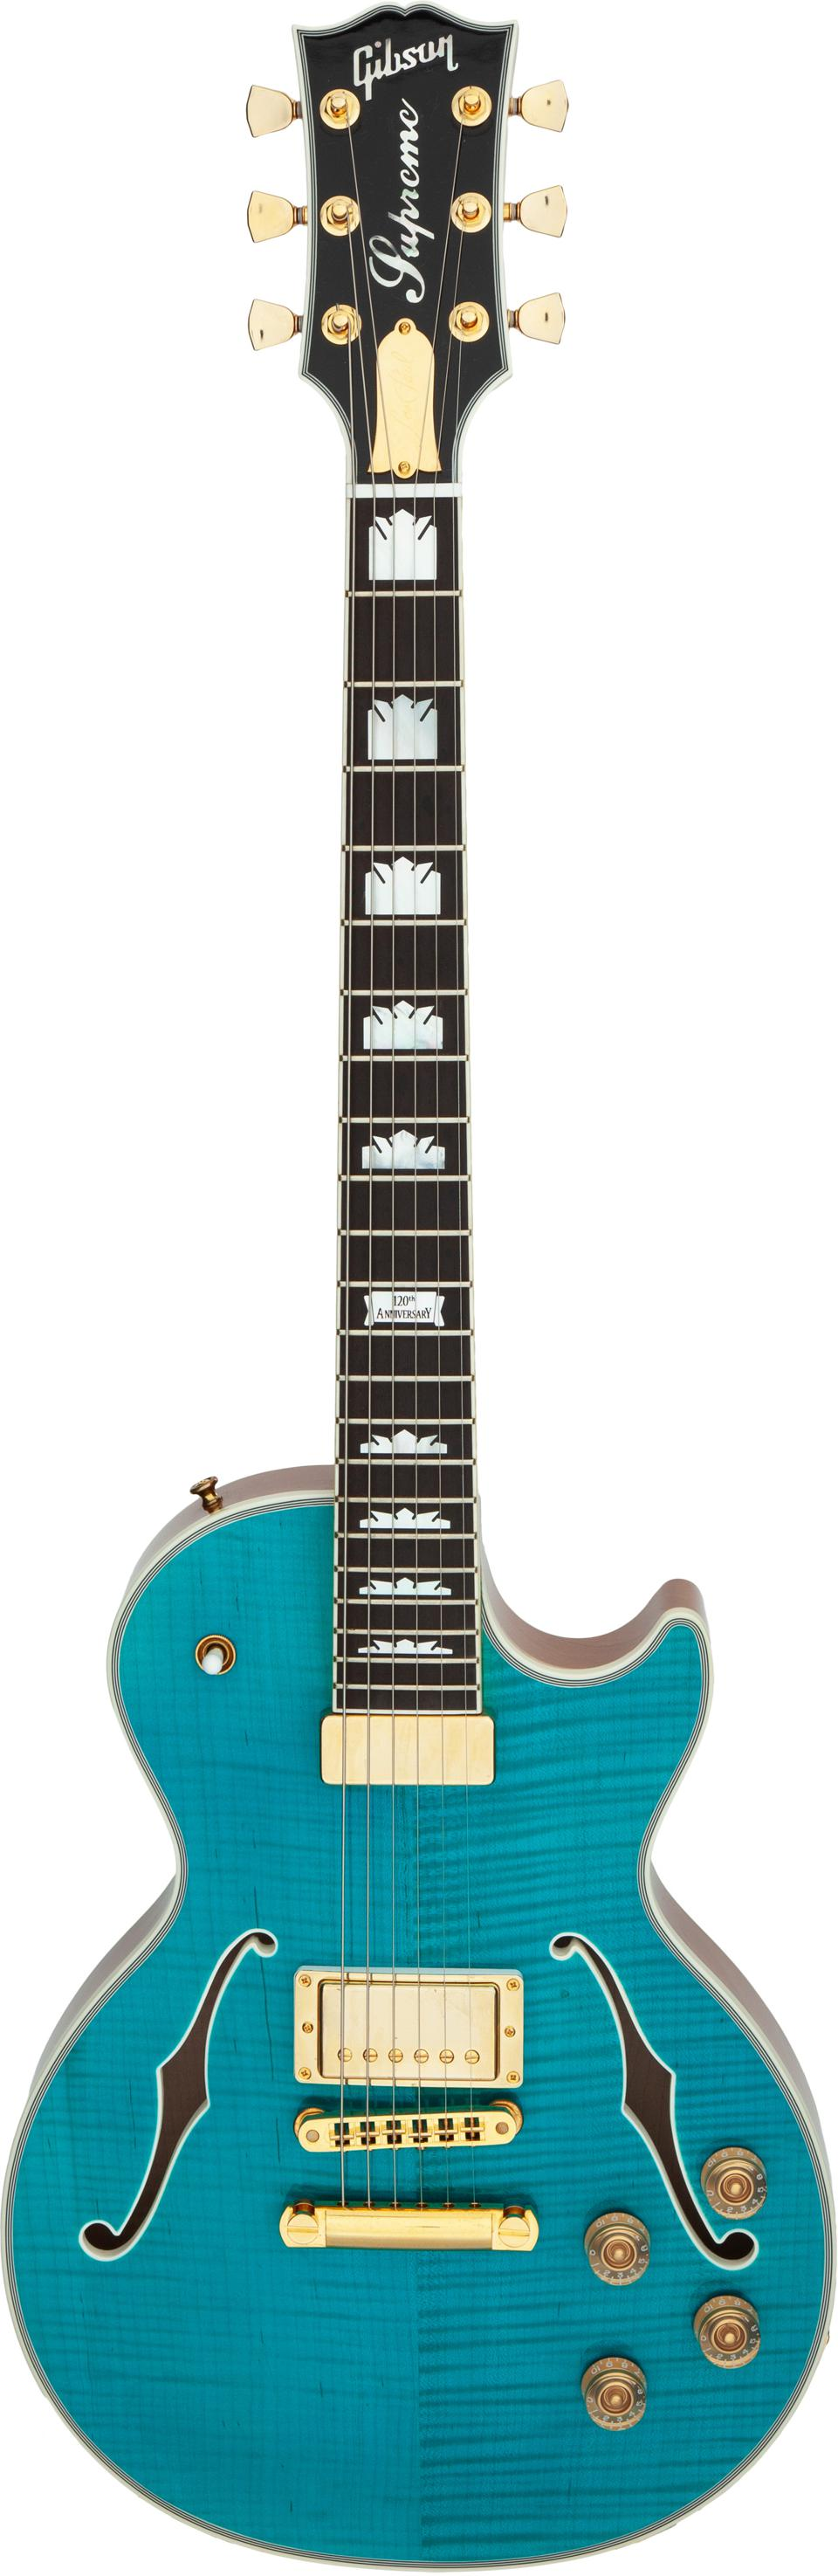 The 2014 Gibson Les Paul Supreme turquoise semi-hollow body electric guitar.